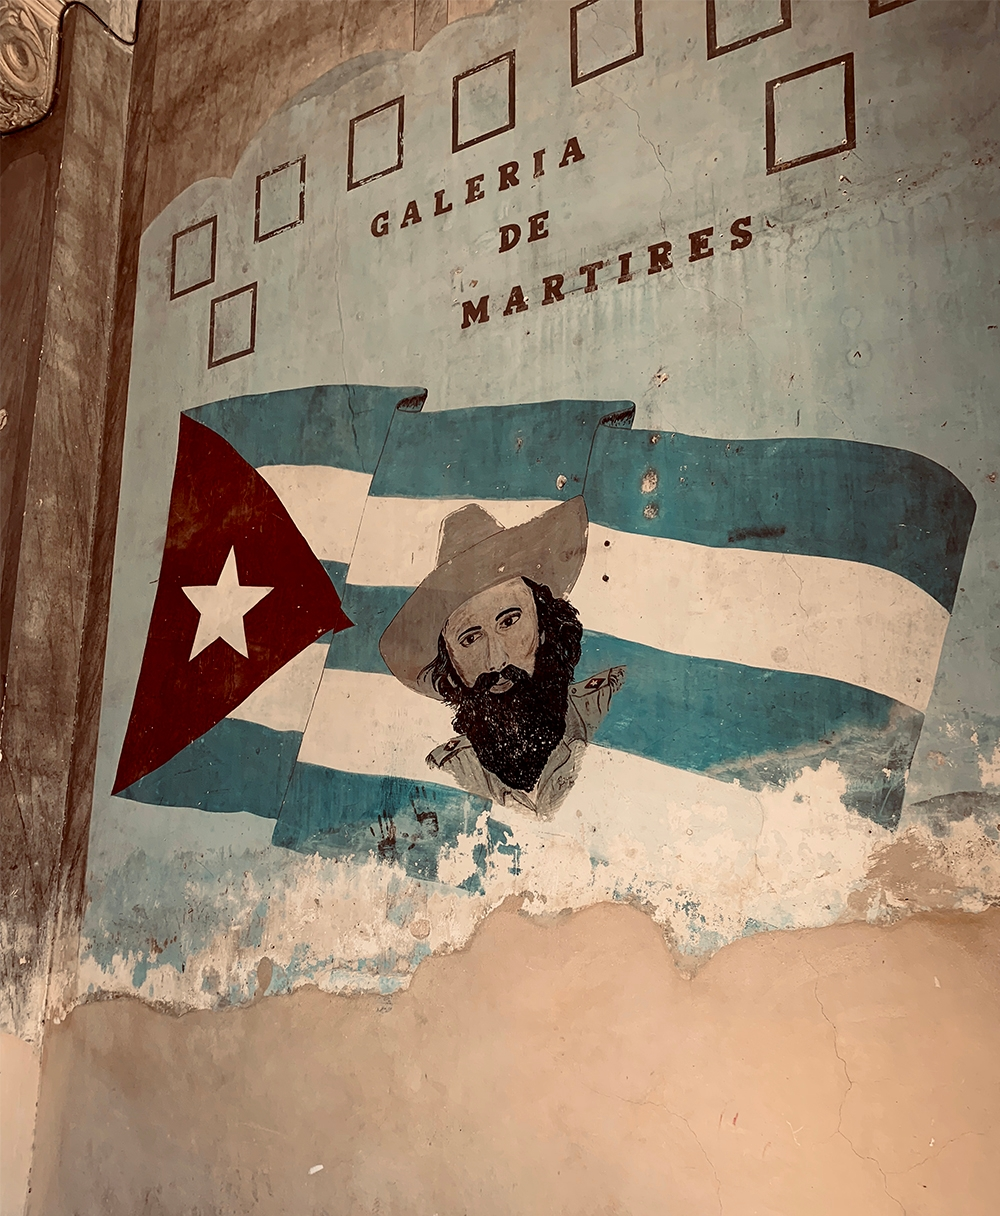 """A wall in the Galeria De Martires with a painting of the Cuban flag, a man's face and """"Galeria De Martires"""""""